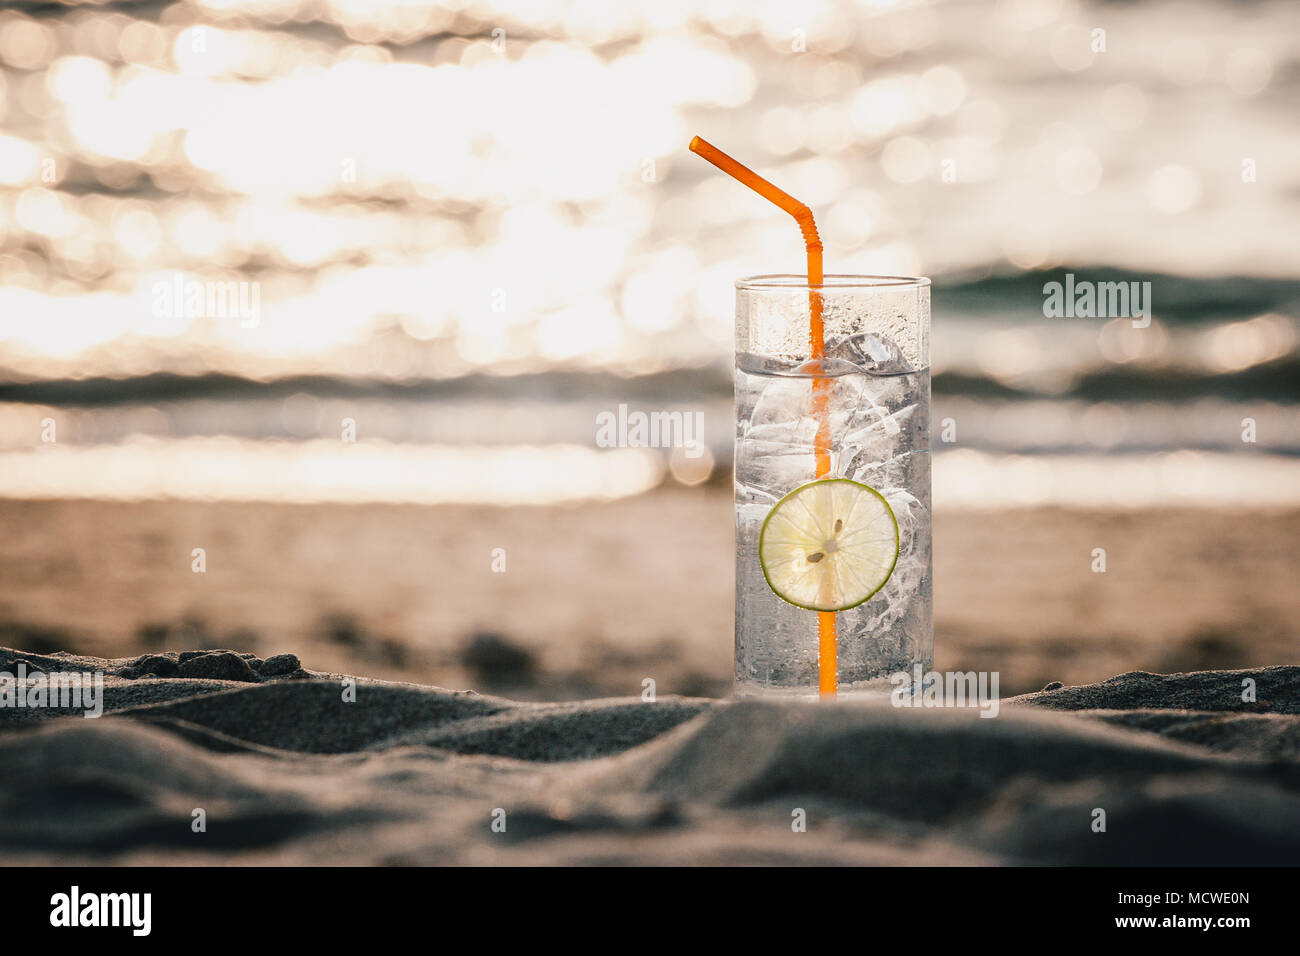 Picture of a glass of Gin Tonic with straw and lime slice on the beach, at sunset. Long Beach, Ko Lanta, Thailand. - Stock Image